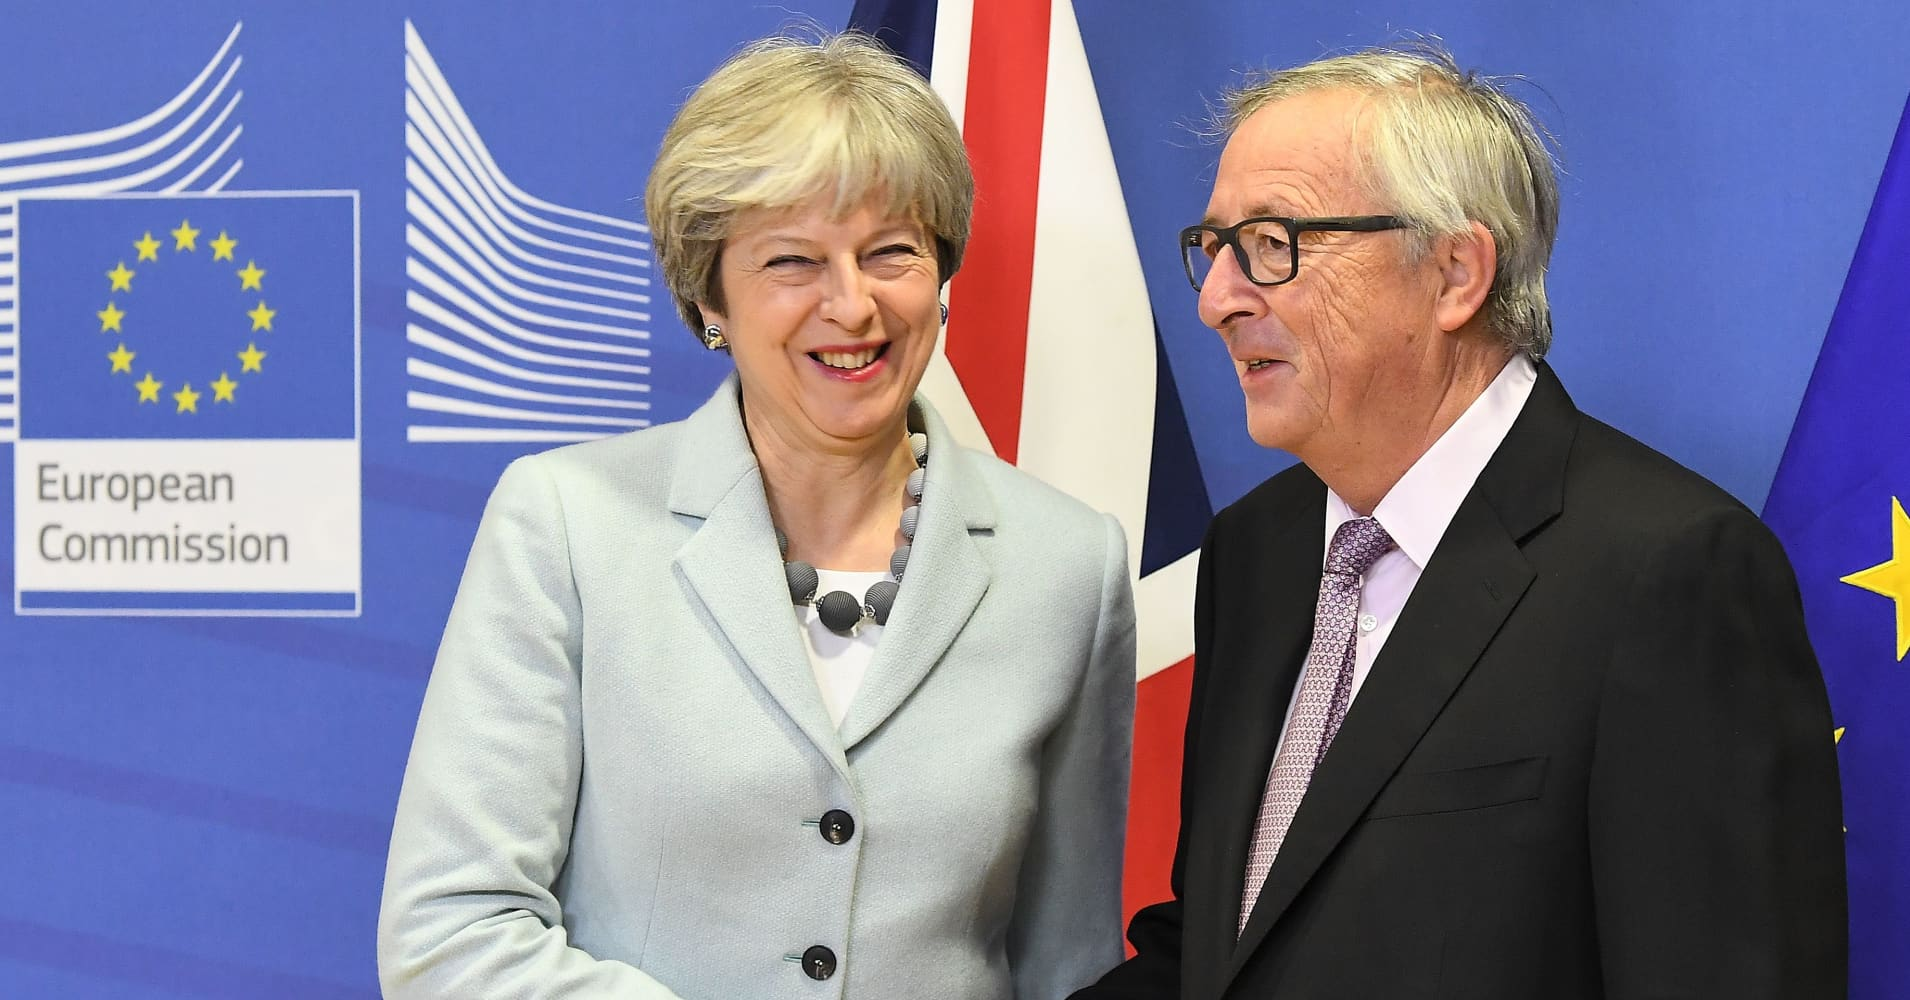 Brexit: EU endorses UK leader Theresa May's deal at historic summit